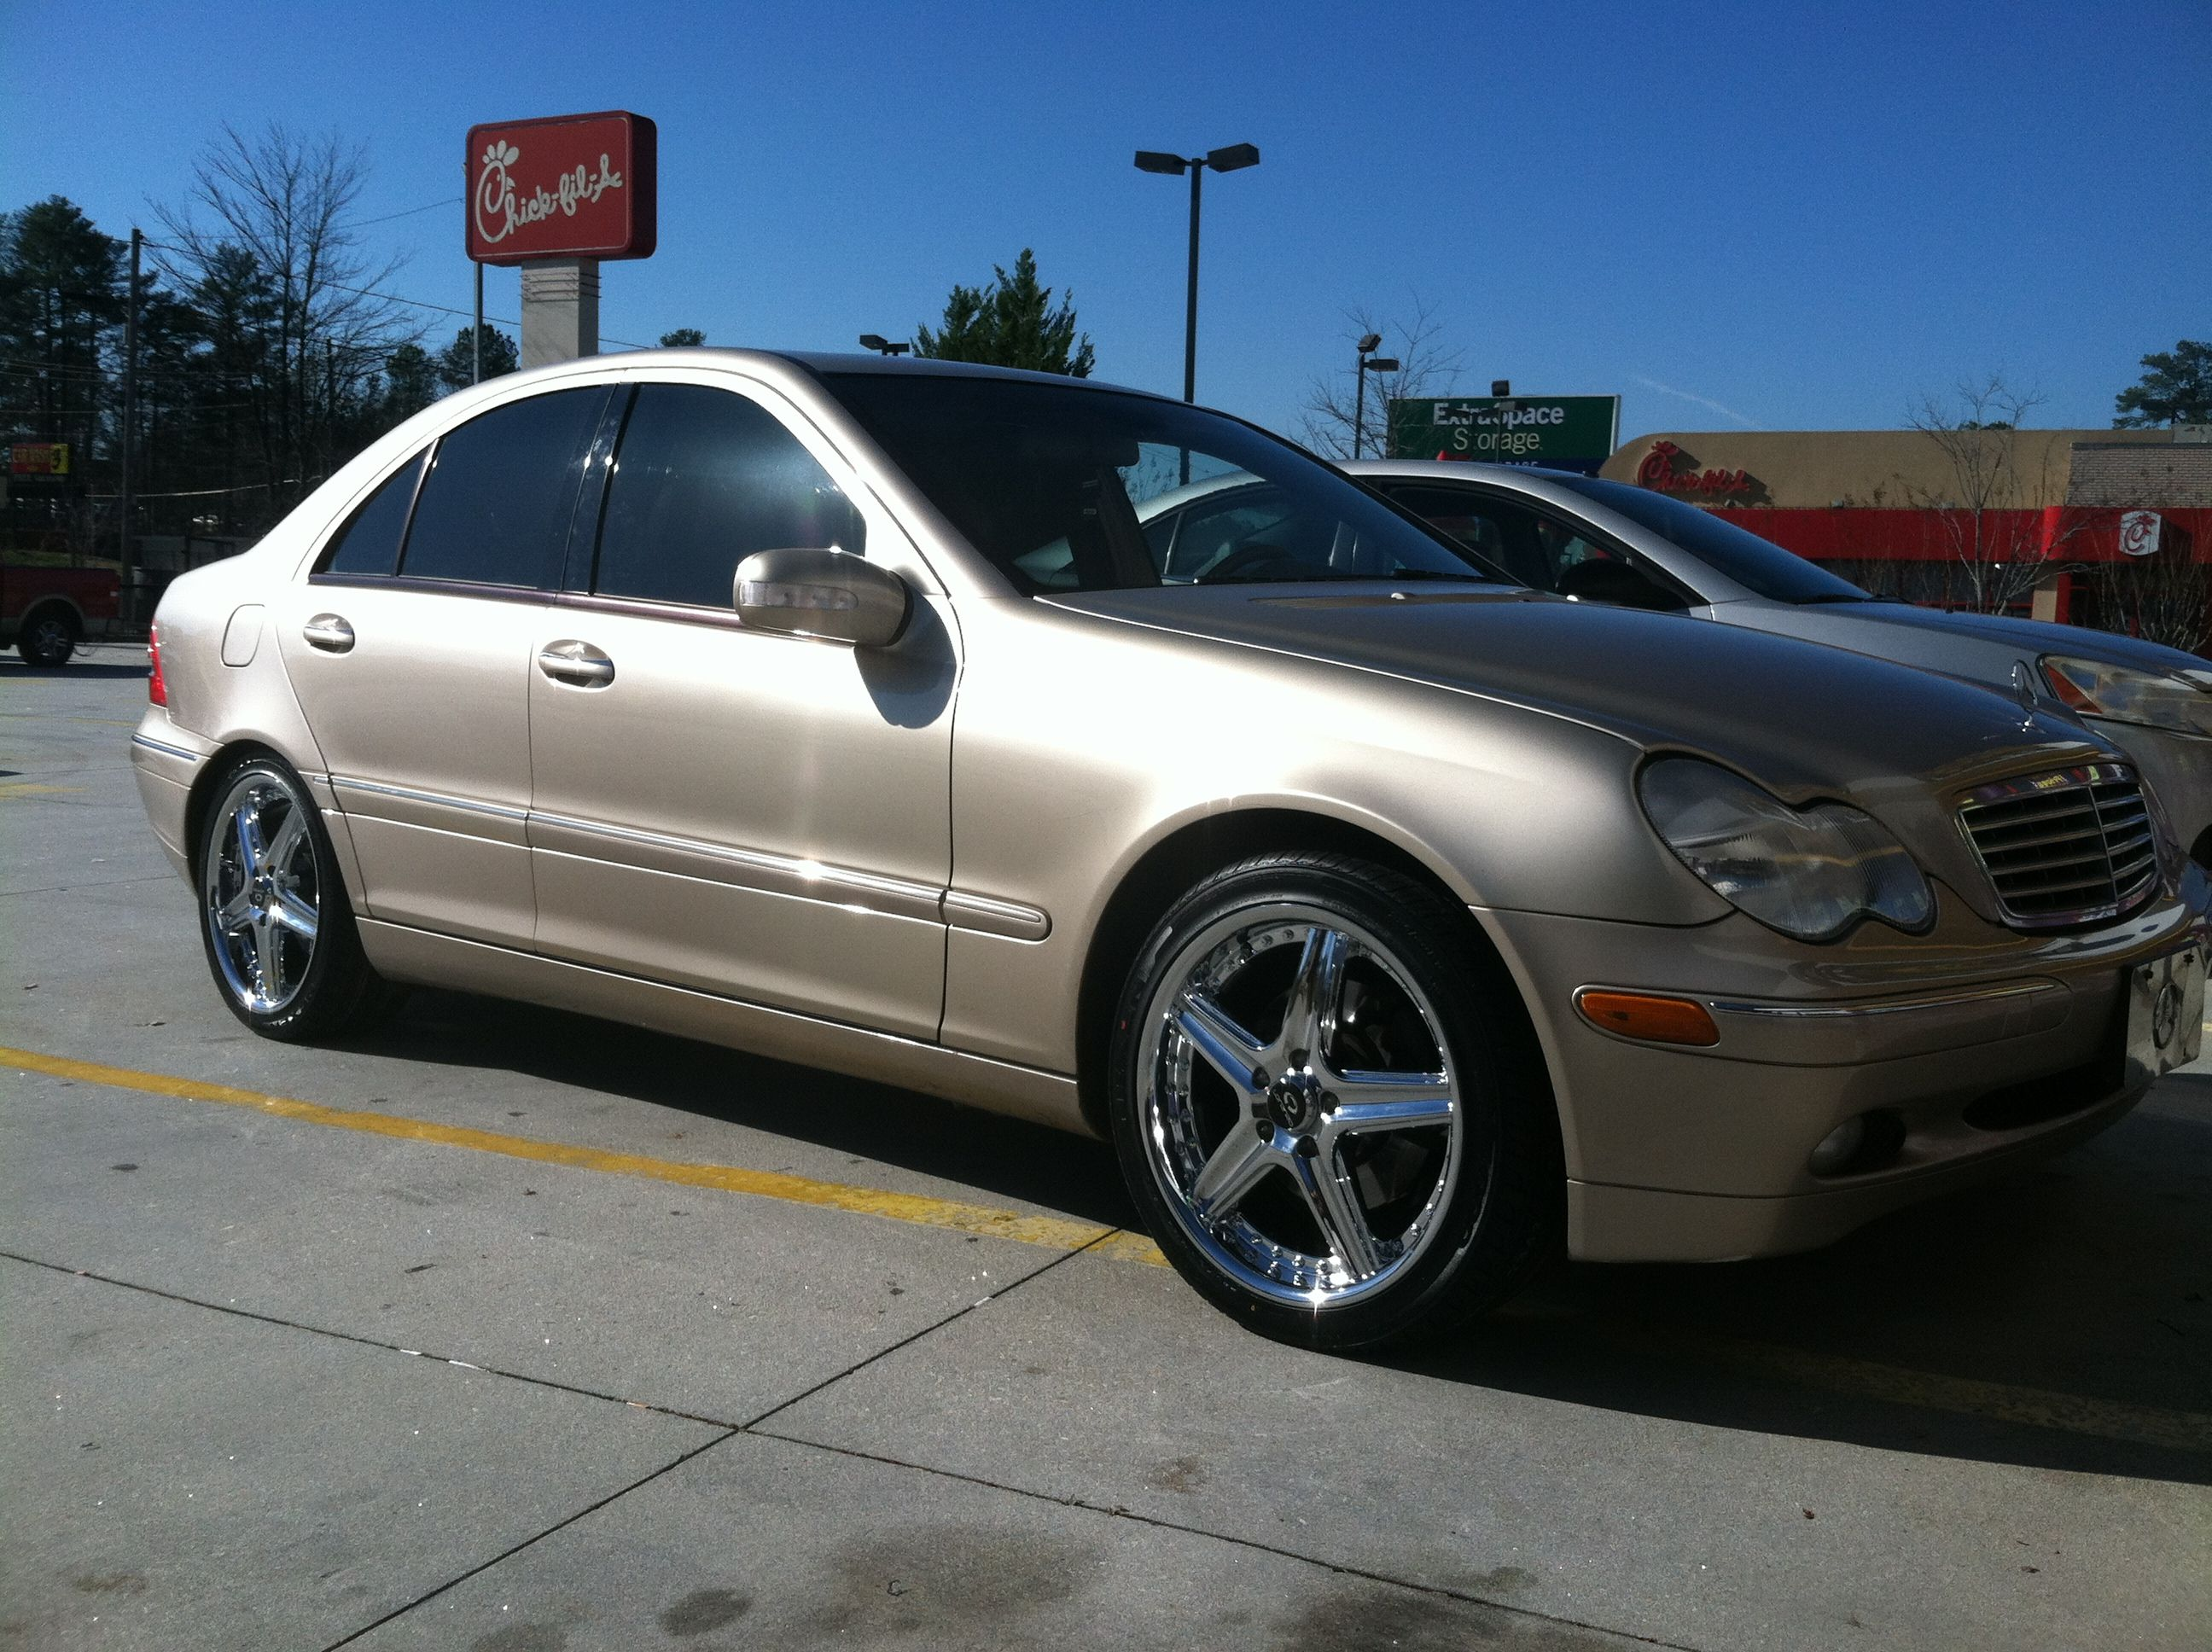 small resolution of here s a close up of terrell hood s 2004 mercedes c240 sporting 18 lorenzo wl019 wheels photo taken at our stone mountain rimco store at 5540 memorial